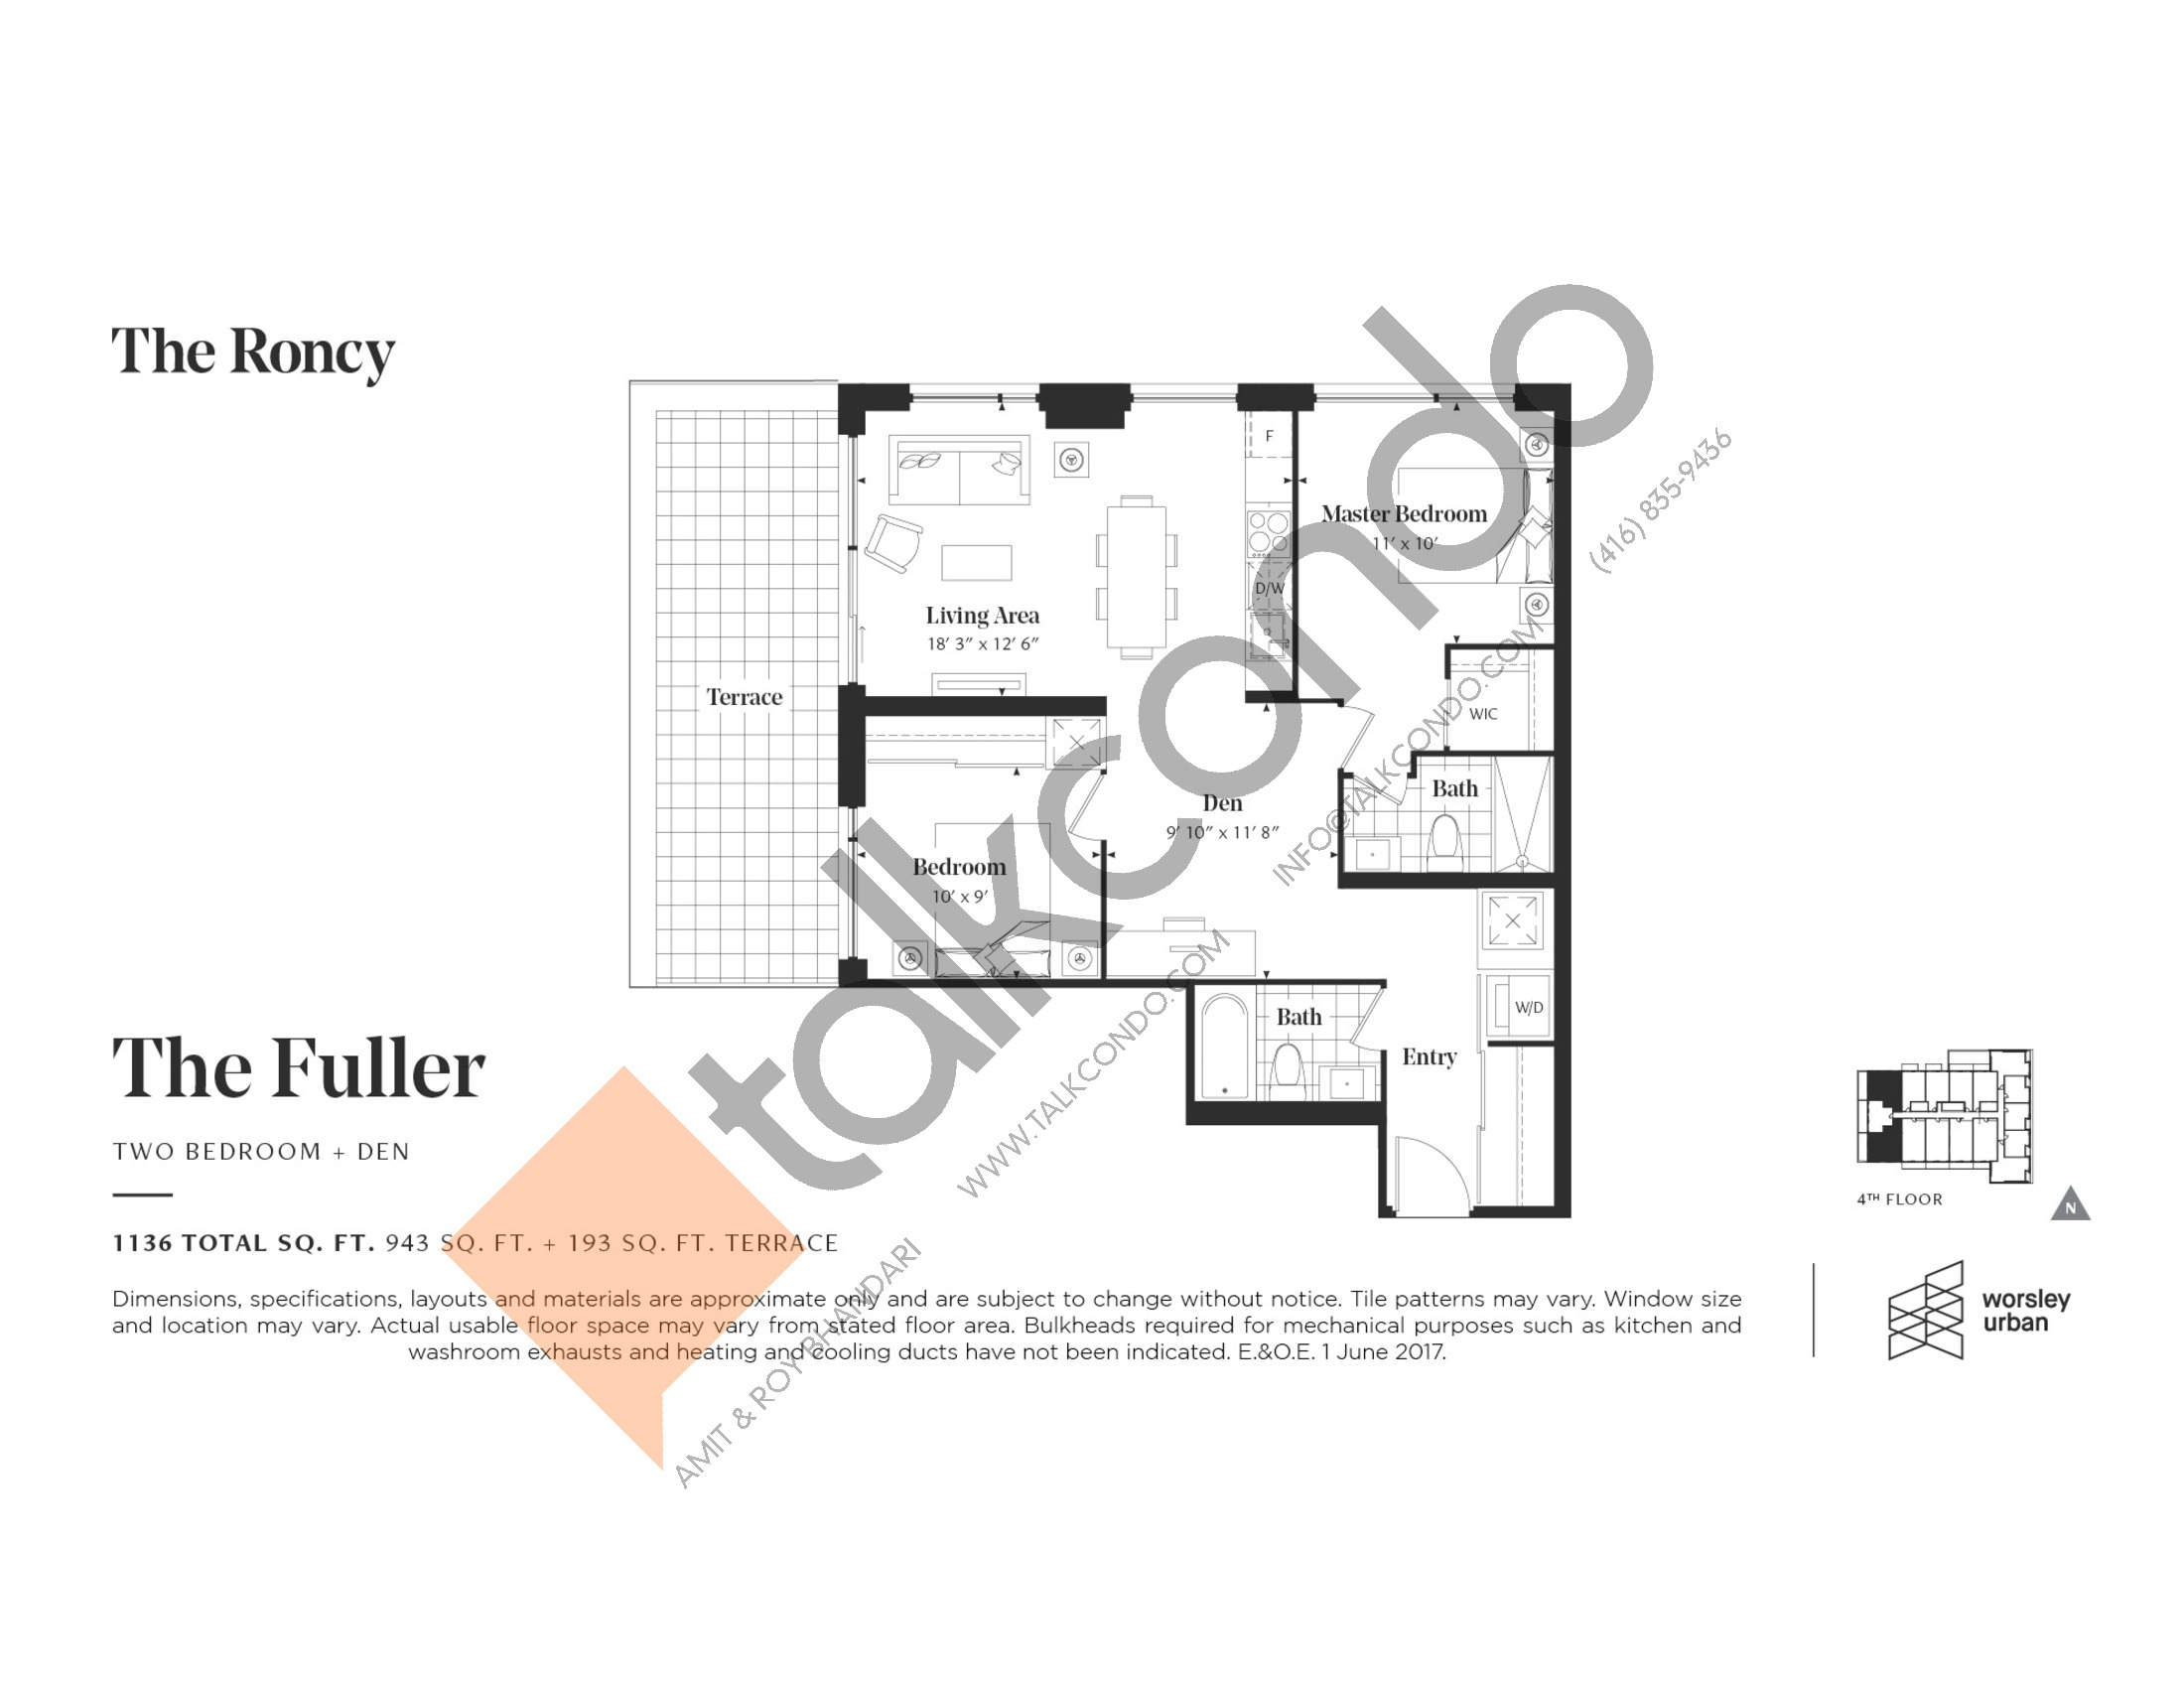 The Fuller Floor Plan at The Roncy Condos - 943 sq.ft